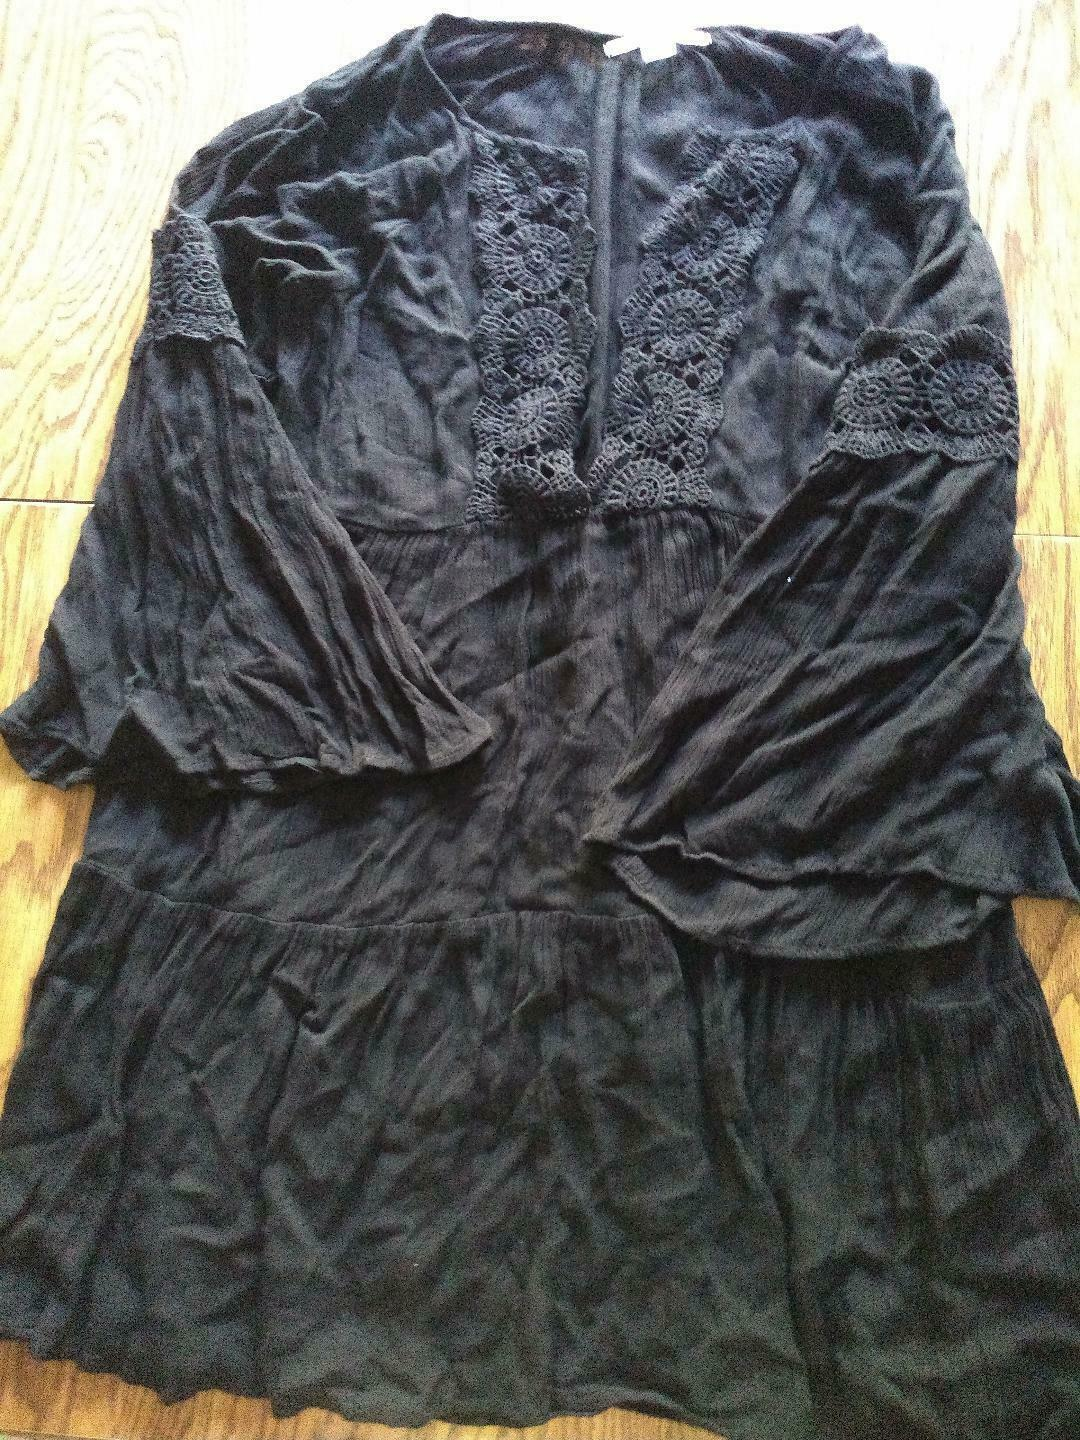 O'Neill Saltwater Solids Bell Sleeved Black Beach Cover Up Size Large